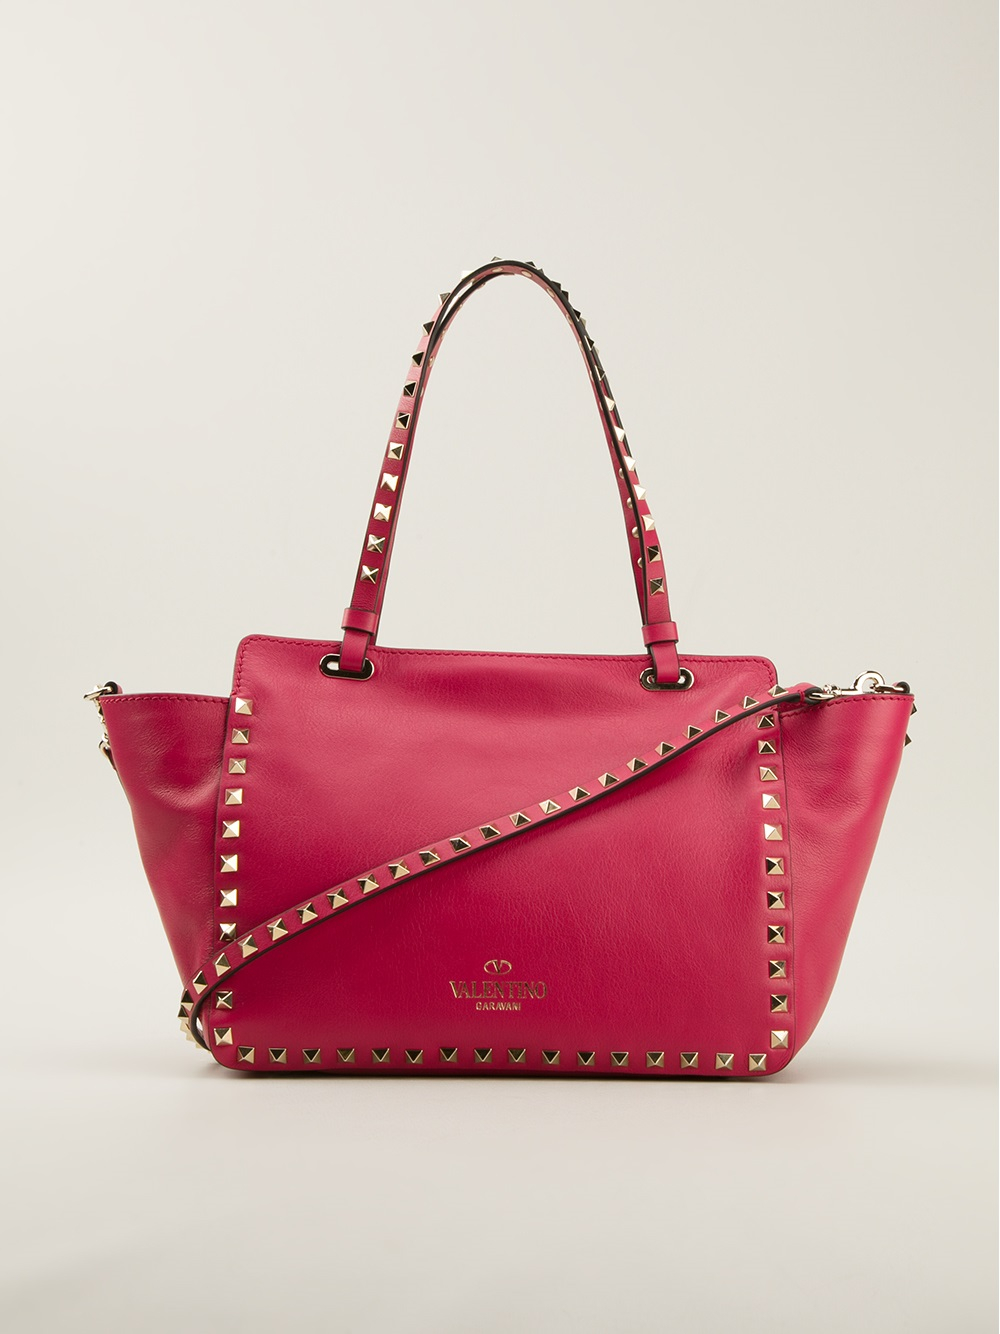 6950a01b8 Valentino Rockstud Trapeze Tote in Pink - Lyst